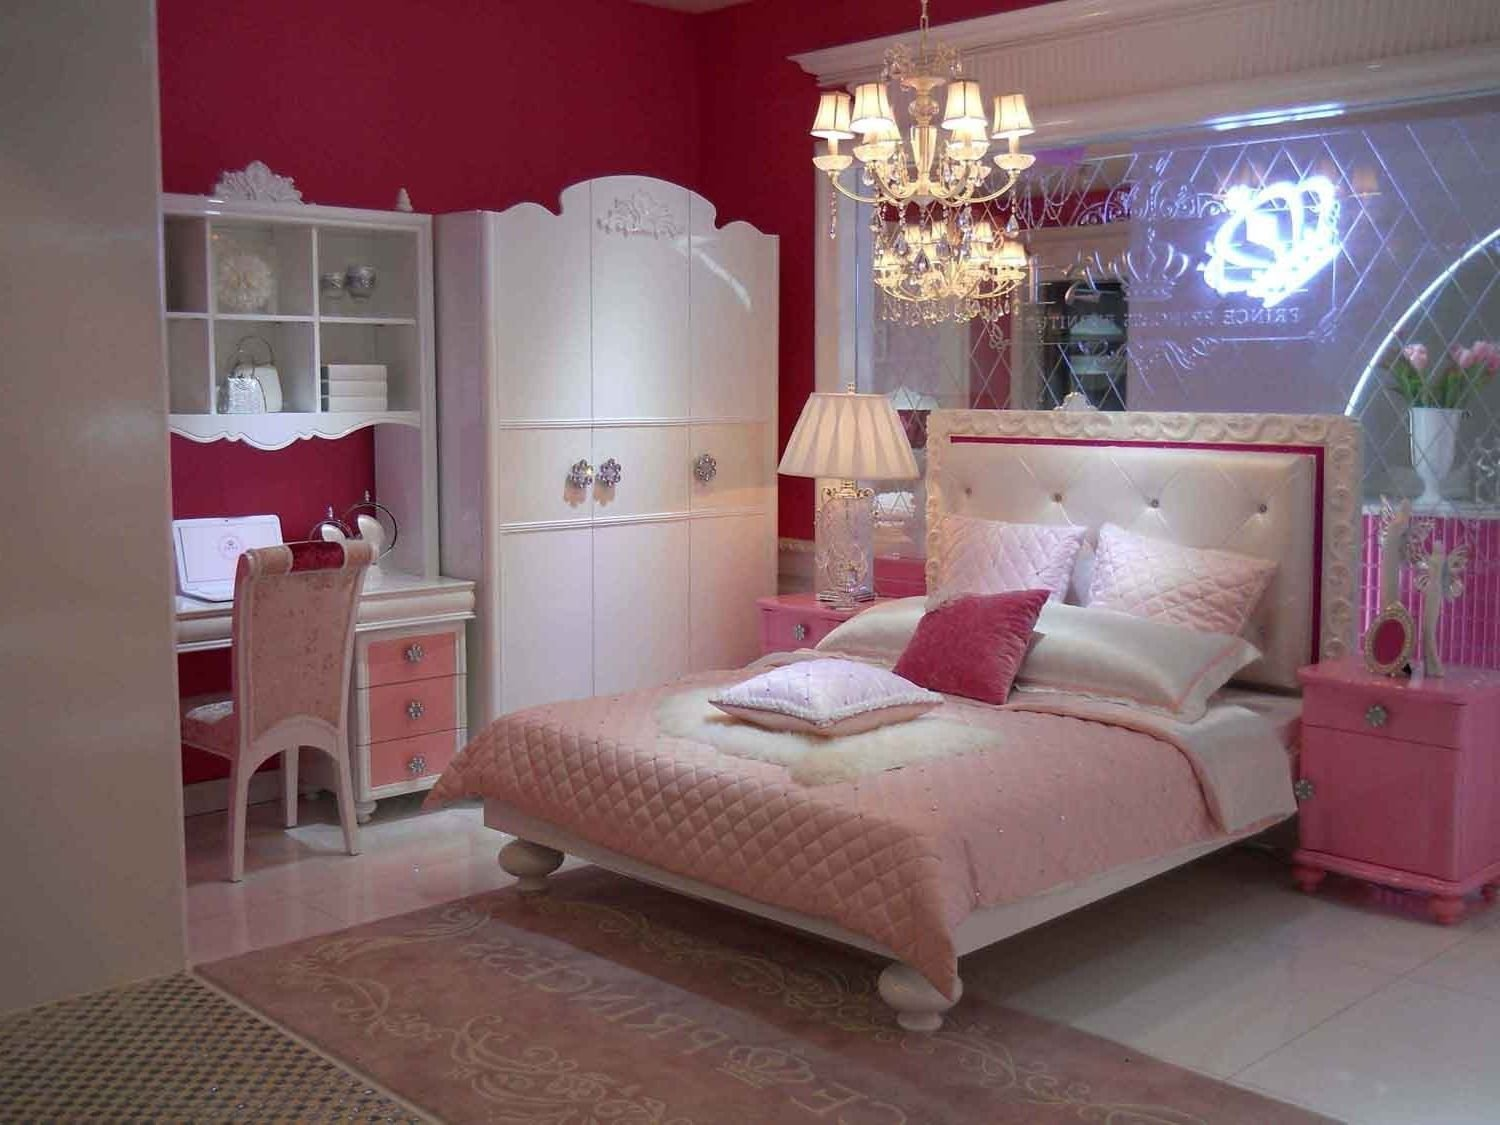 Disney Princess Bedroom Set Awesome Bedroom Decor Princess Kids Bedroom Sets Furniture Sleeping